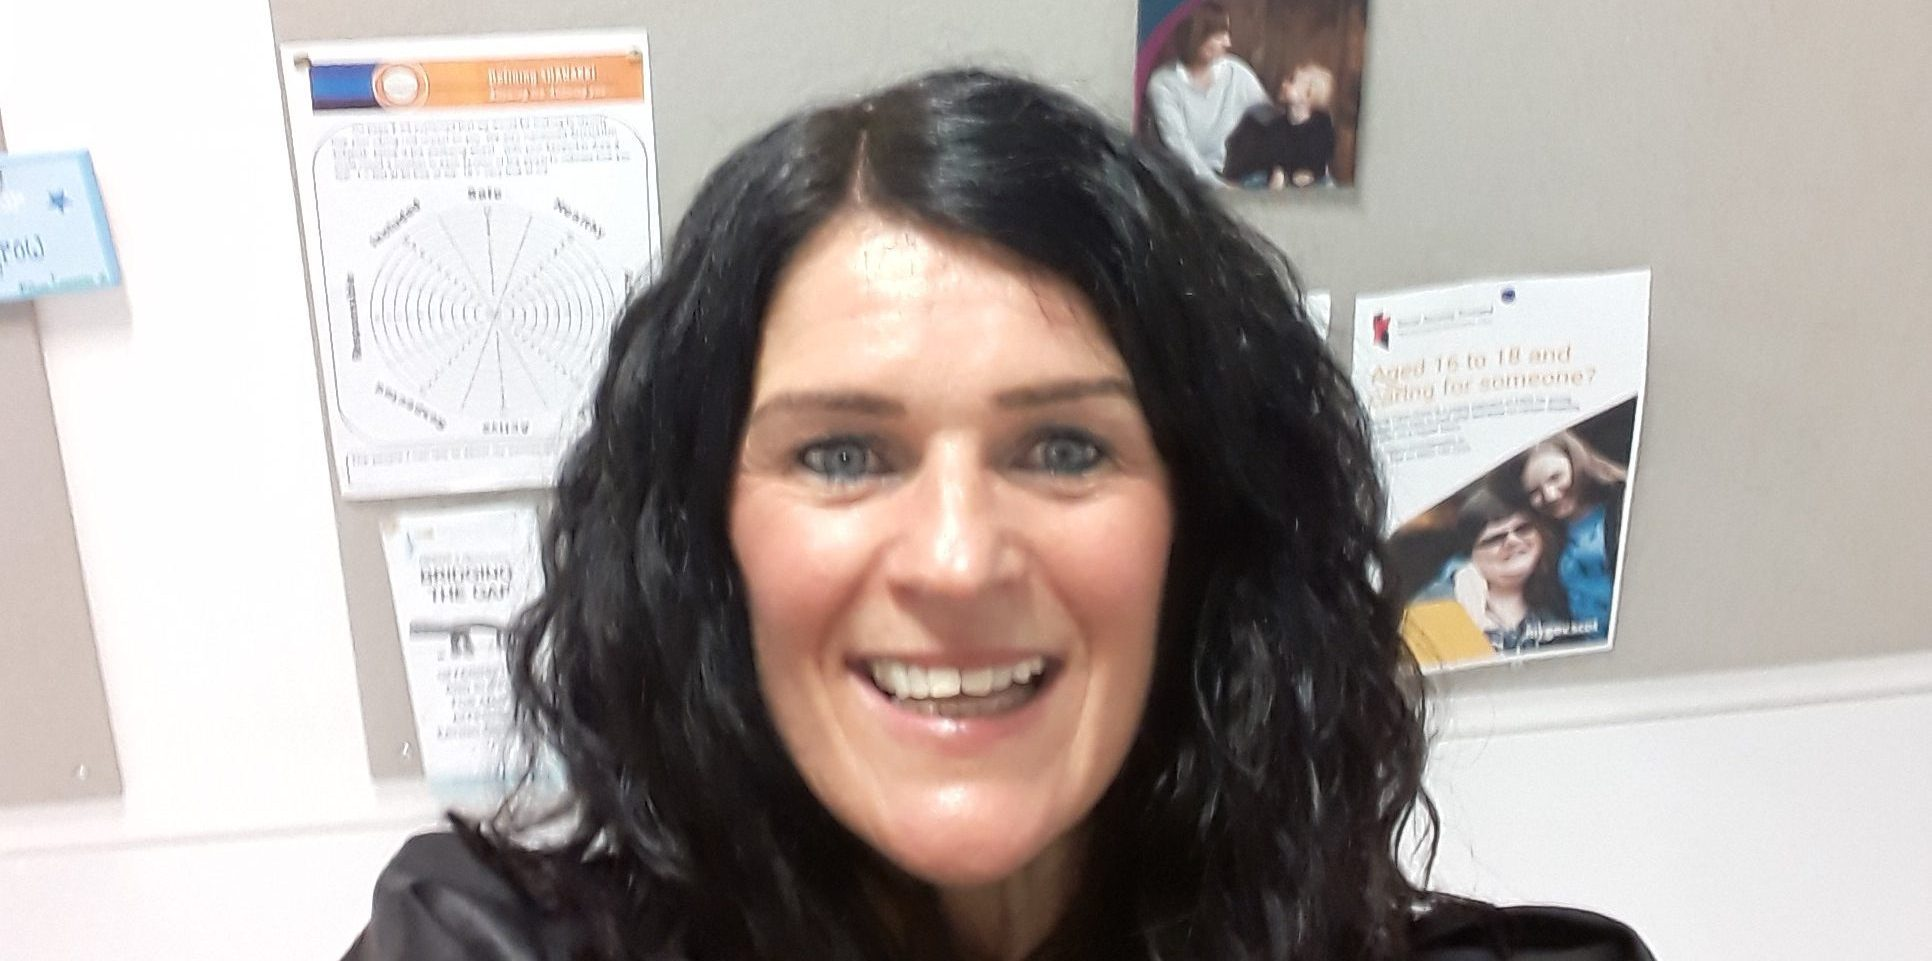 Support worker Vickie Carnegie taking a selfie at Harris Academy in Dundee